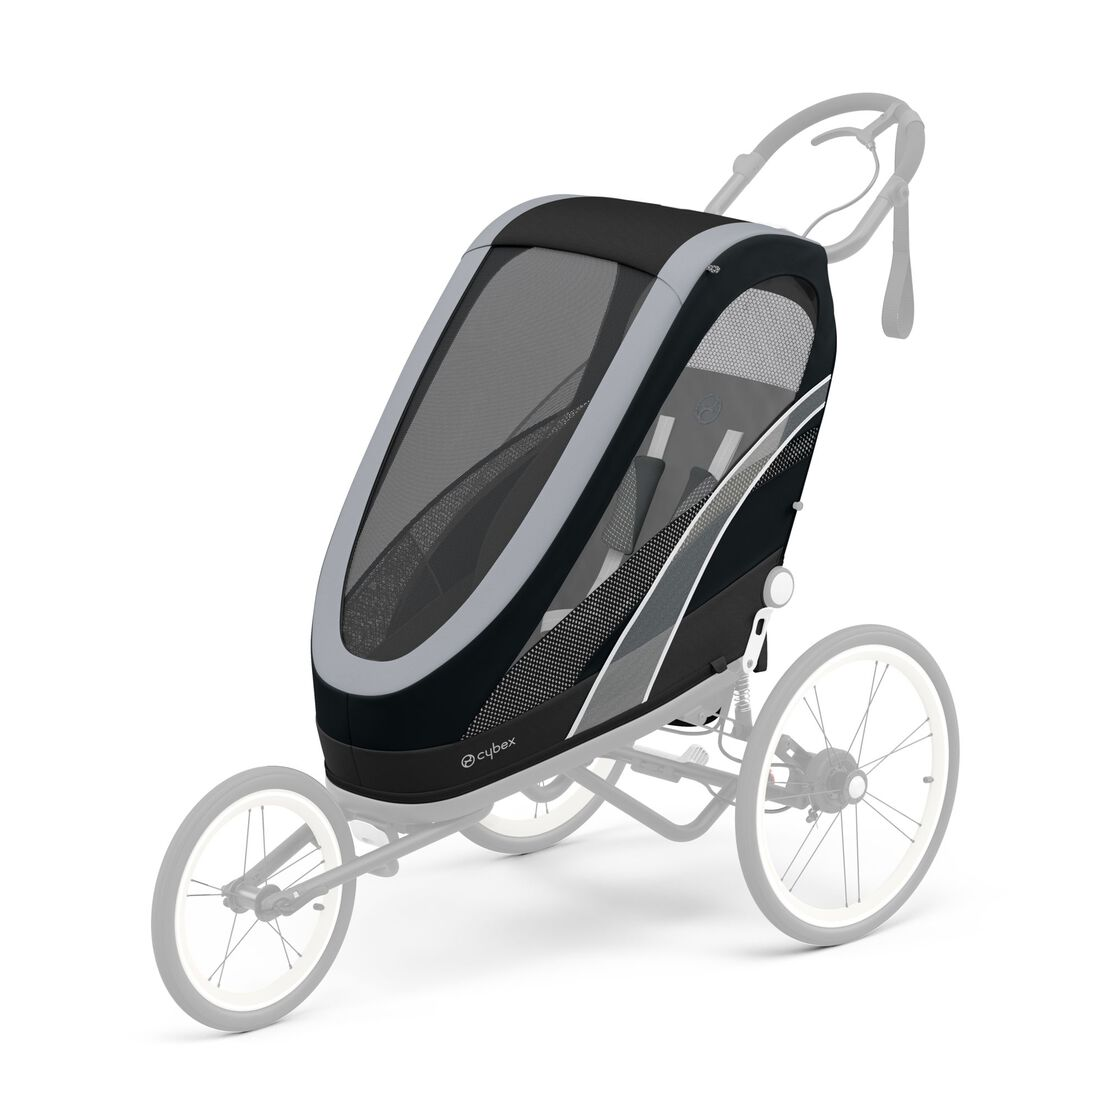 CYBEX Zeno Seat Pack - All Black in All Black large image number 1